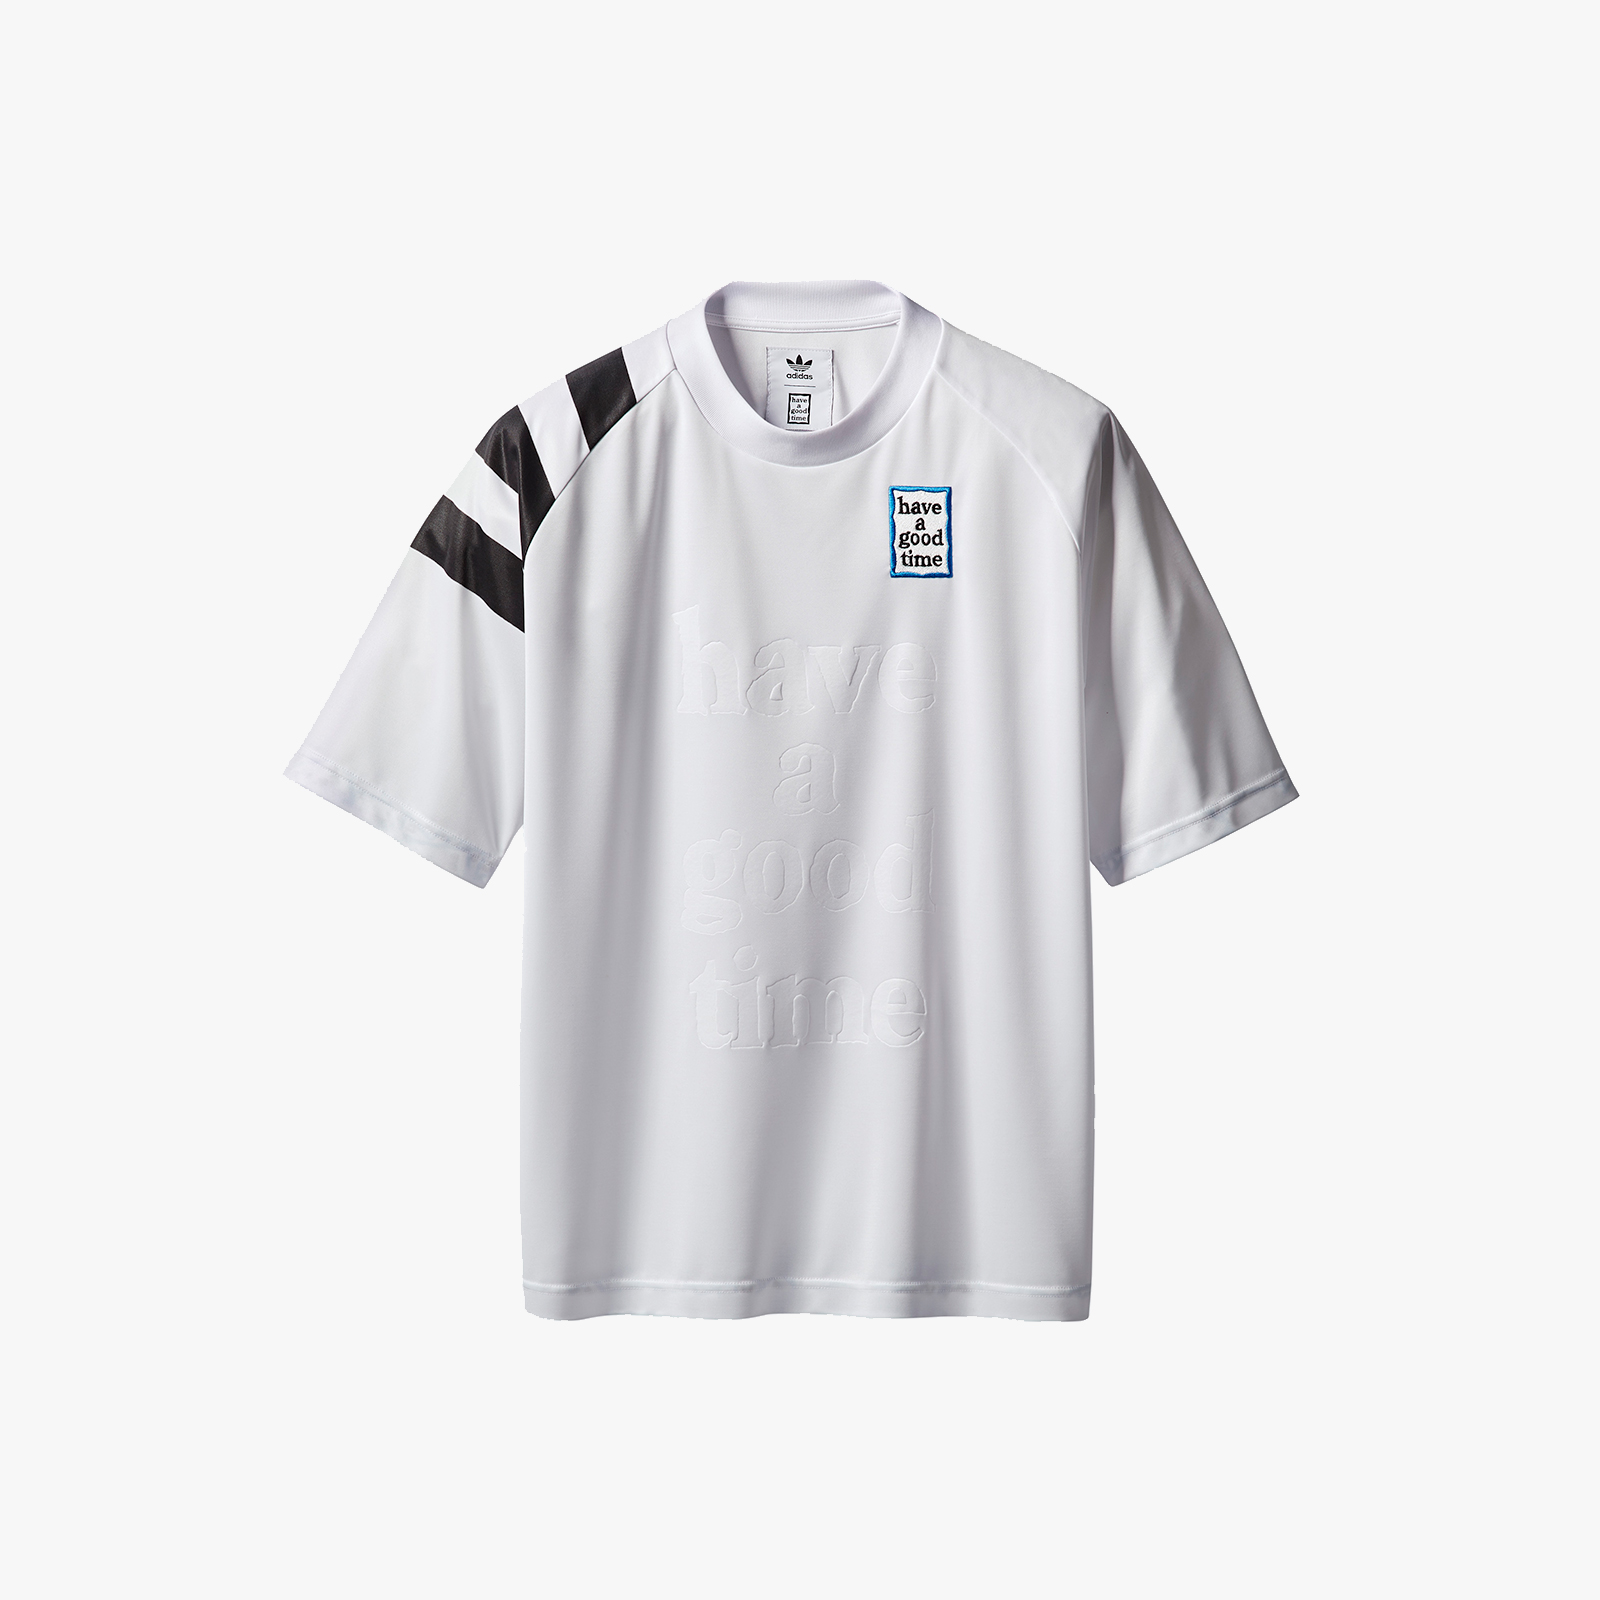 adidas Game Jersey x Have A Good Time Dz9231